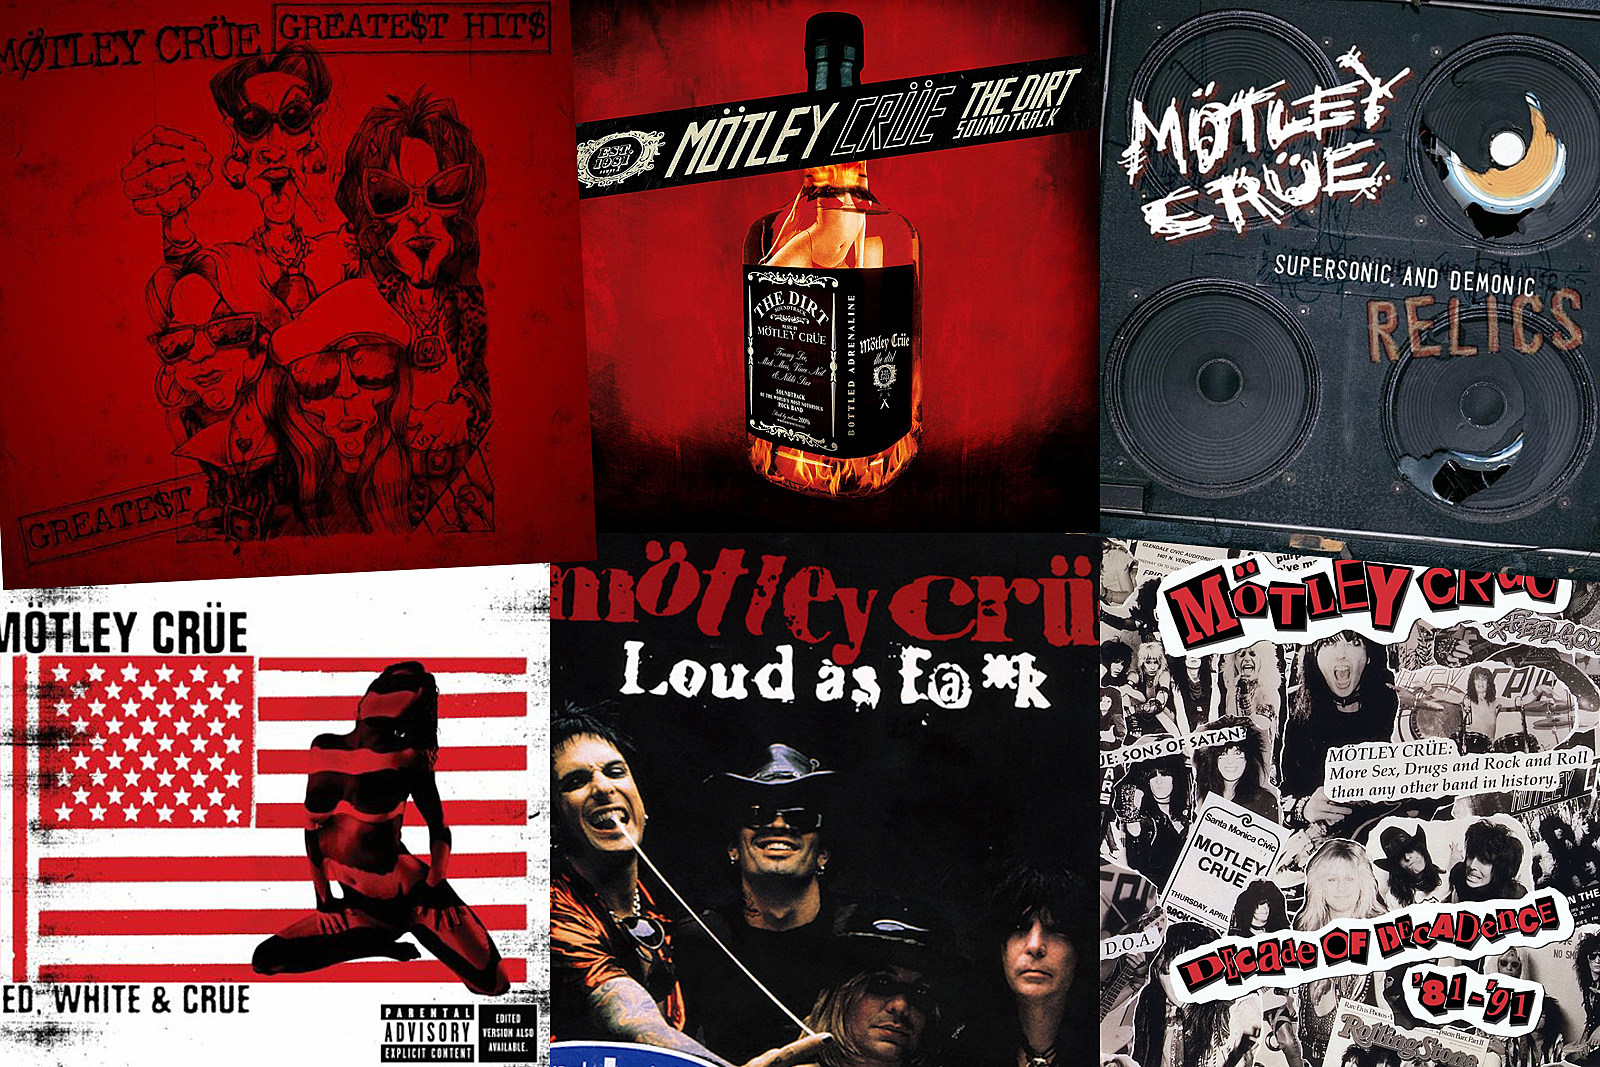 Motley Crue Greatest Hits Albums Ranked Worst to Best